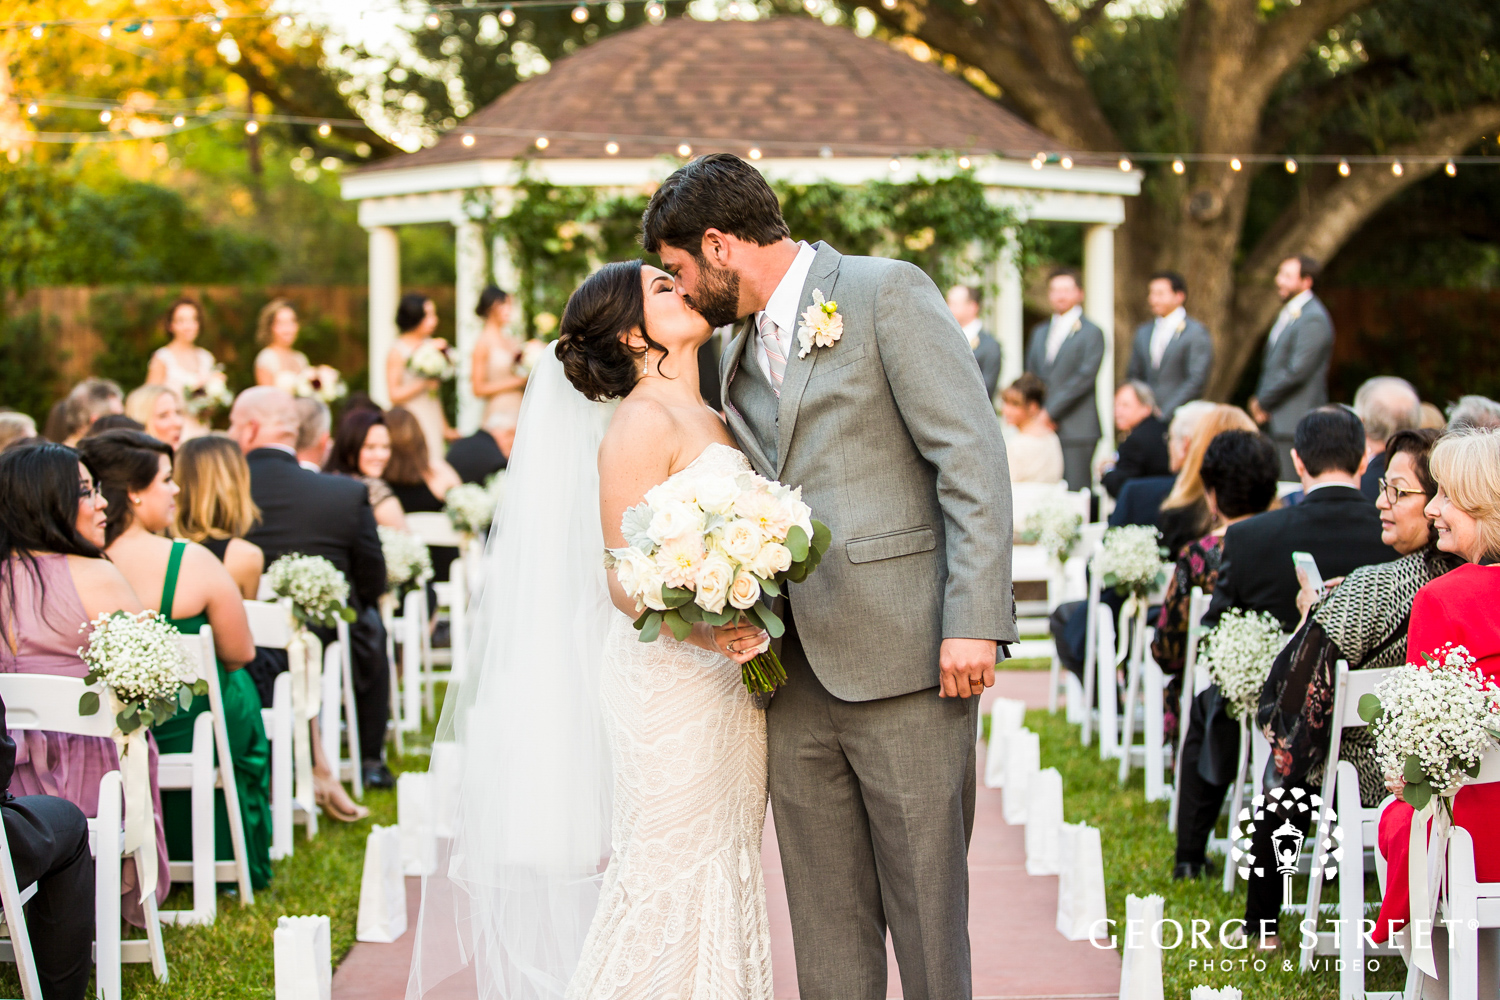 Wedding Photography and Planning Made Simple